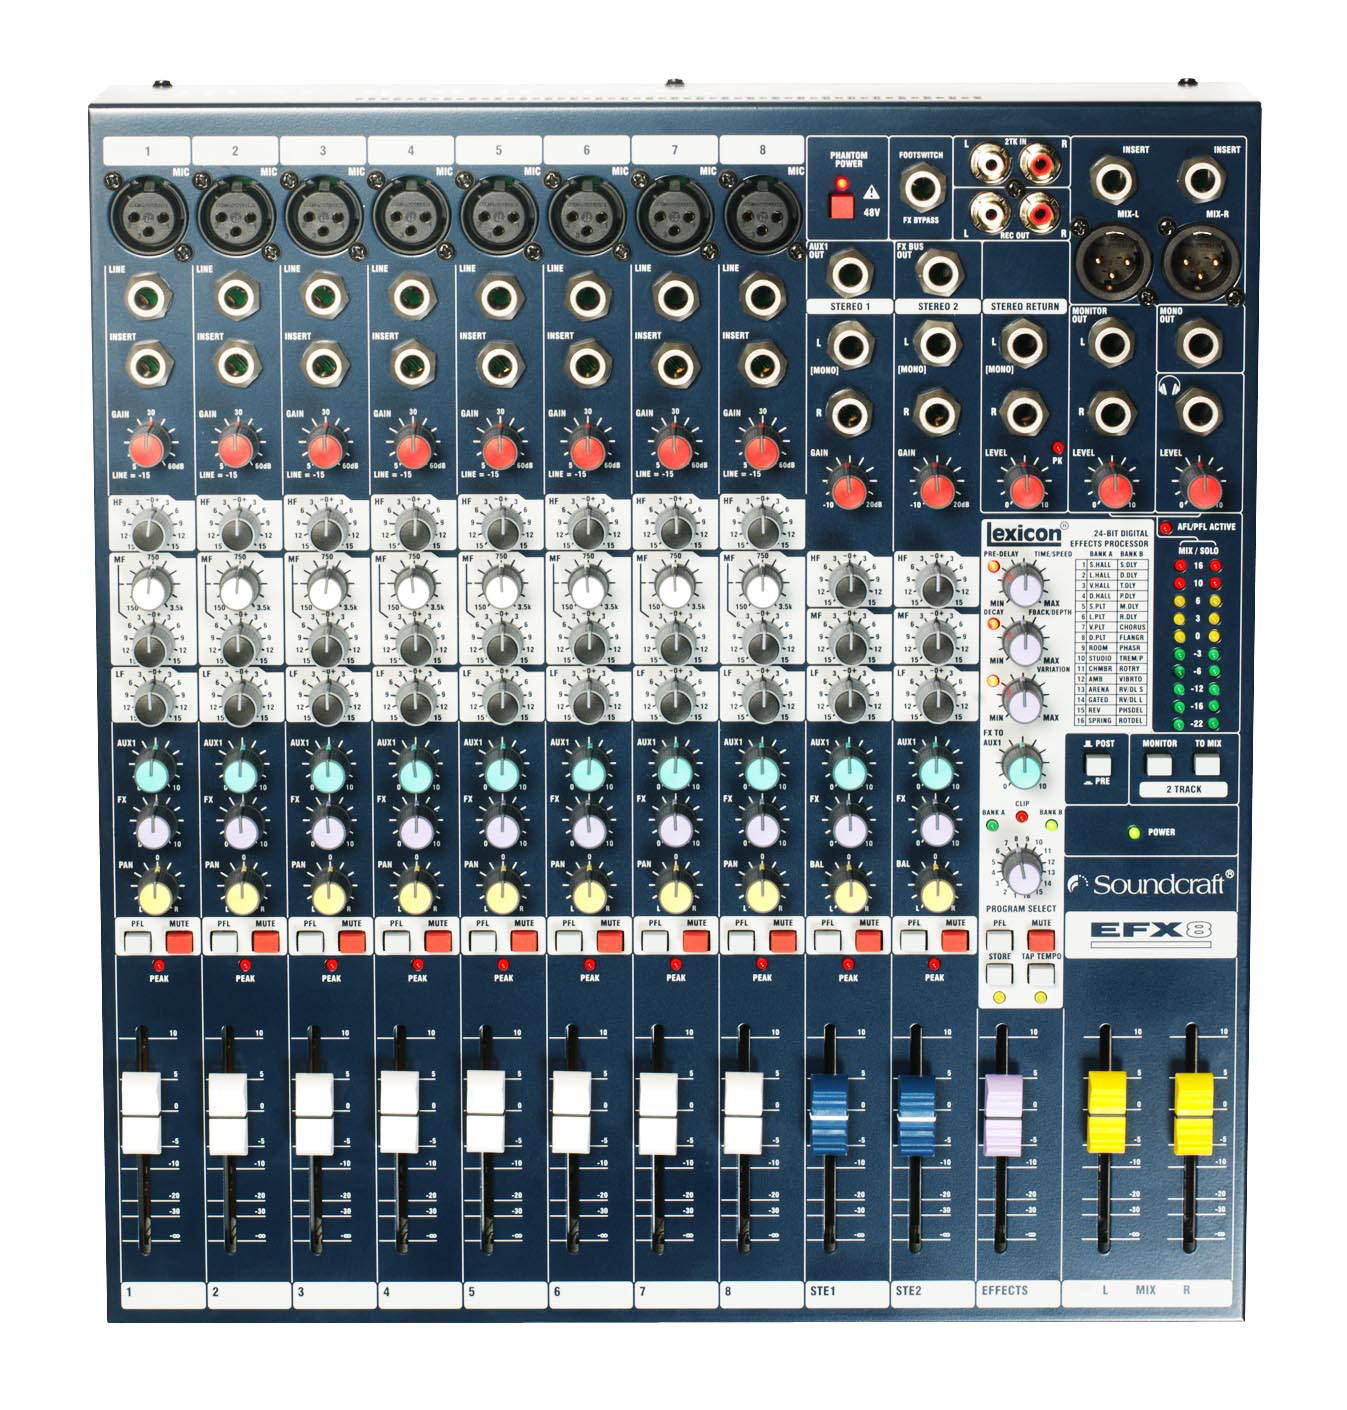 Efx8 Soundcraft Professional Audio Mixers 3 5 Mm Jack Ptt Microphone Wiring Low Cost High Performance Lexicon Effects